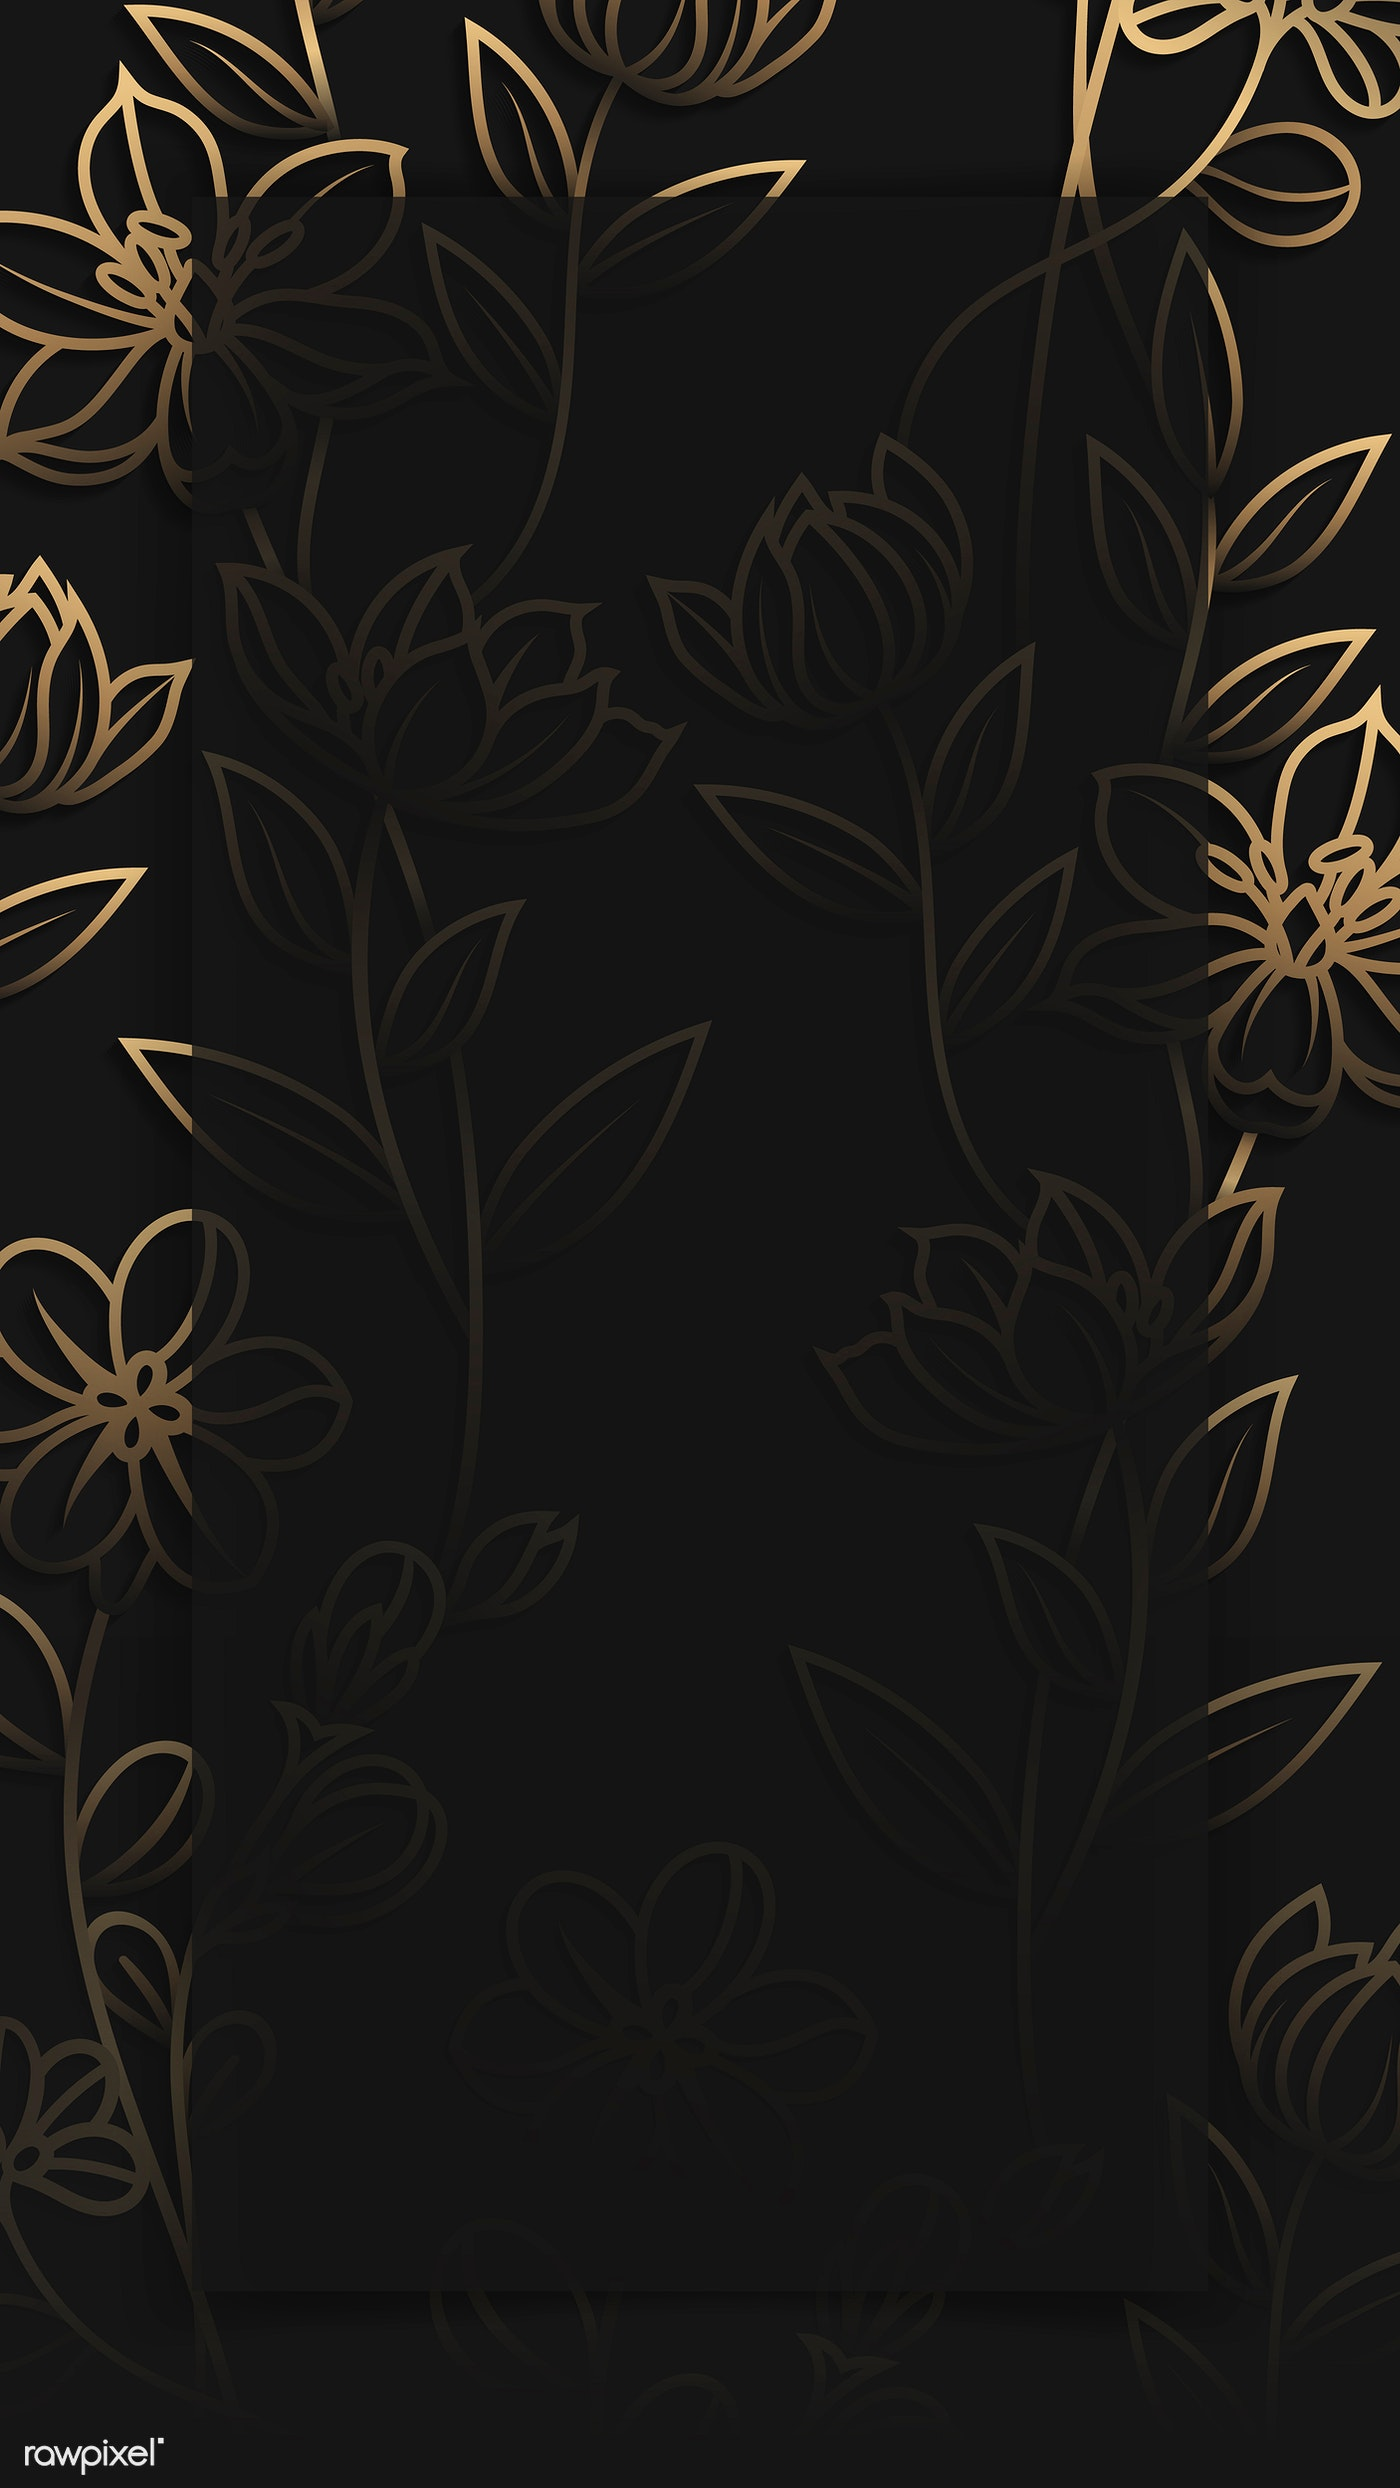 Floral Patterned Phone Background Royalty Free Vector 1218069